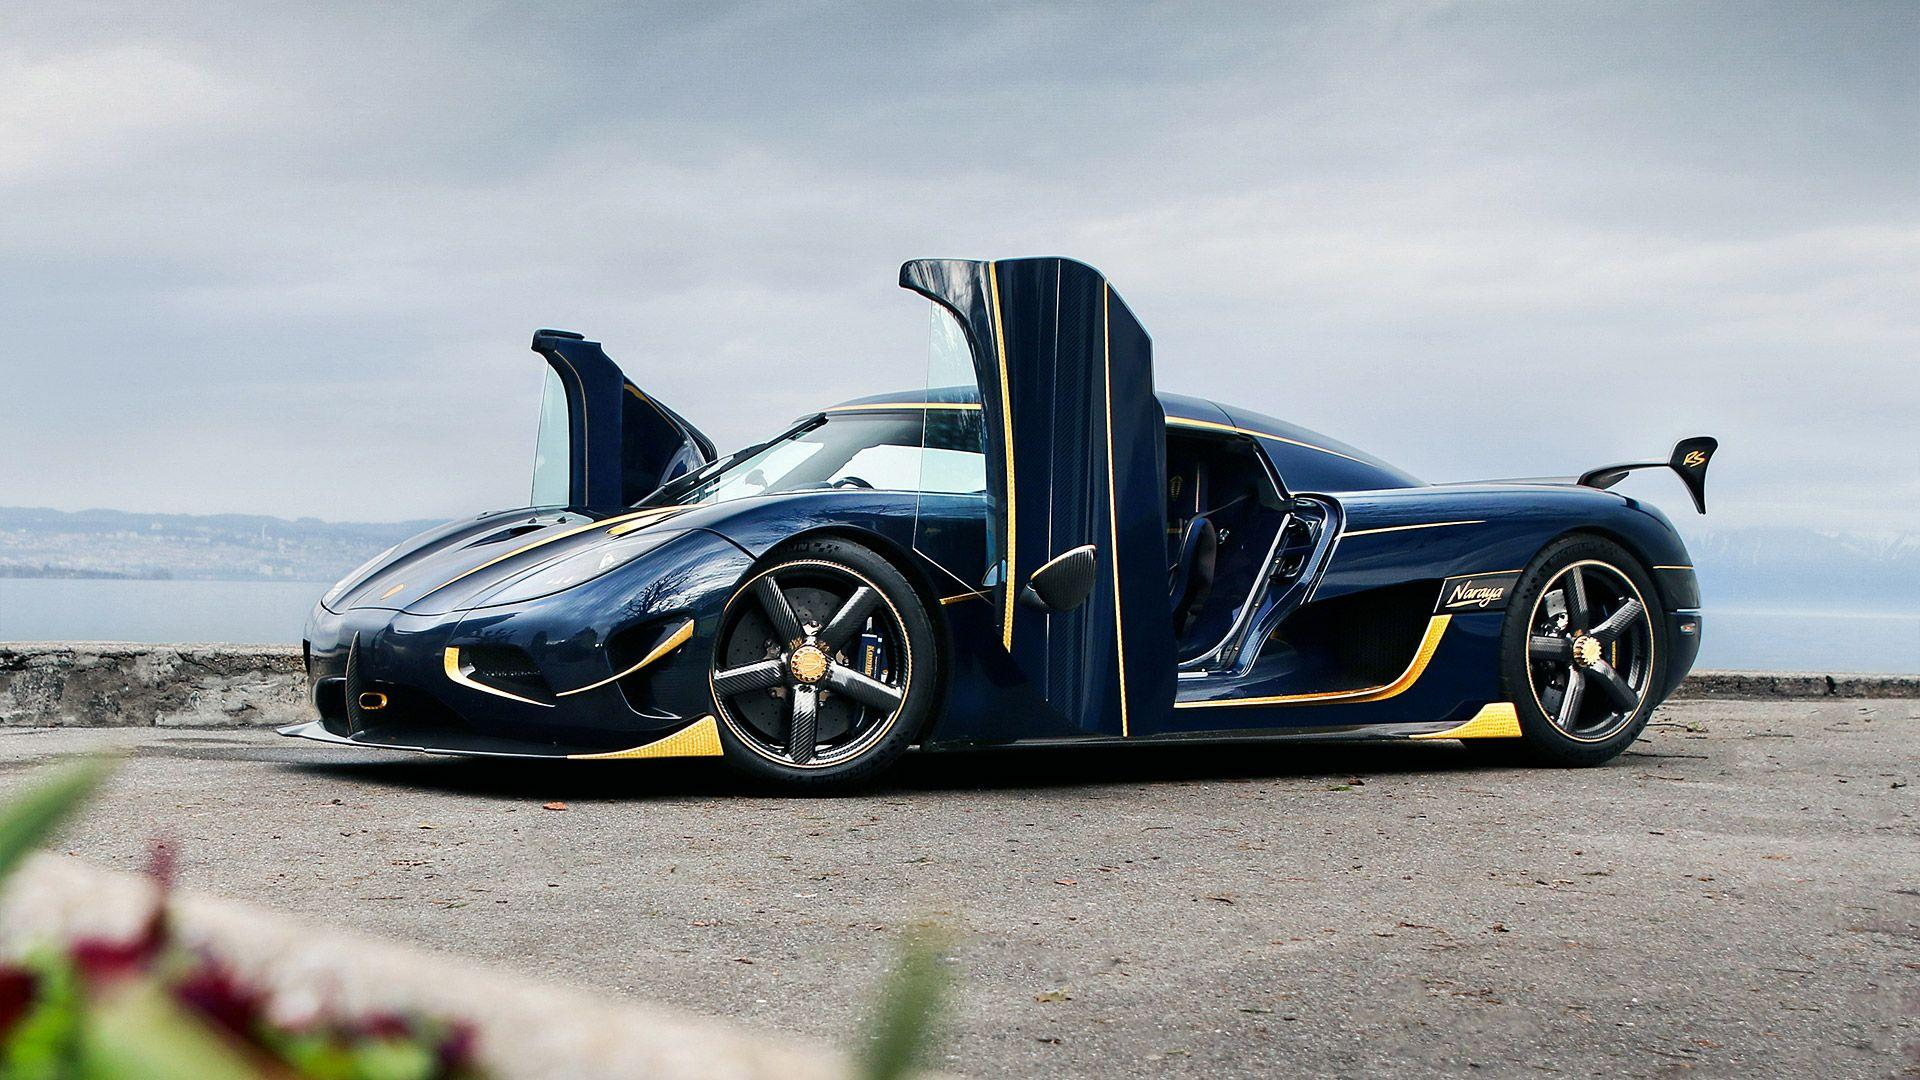 2015 Koenigsegg Agera RS Wallpapers & HD Image